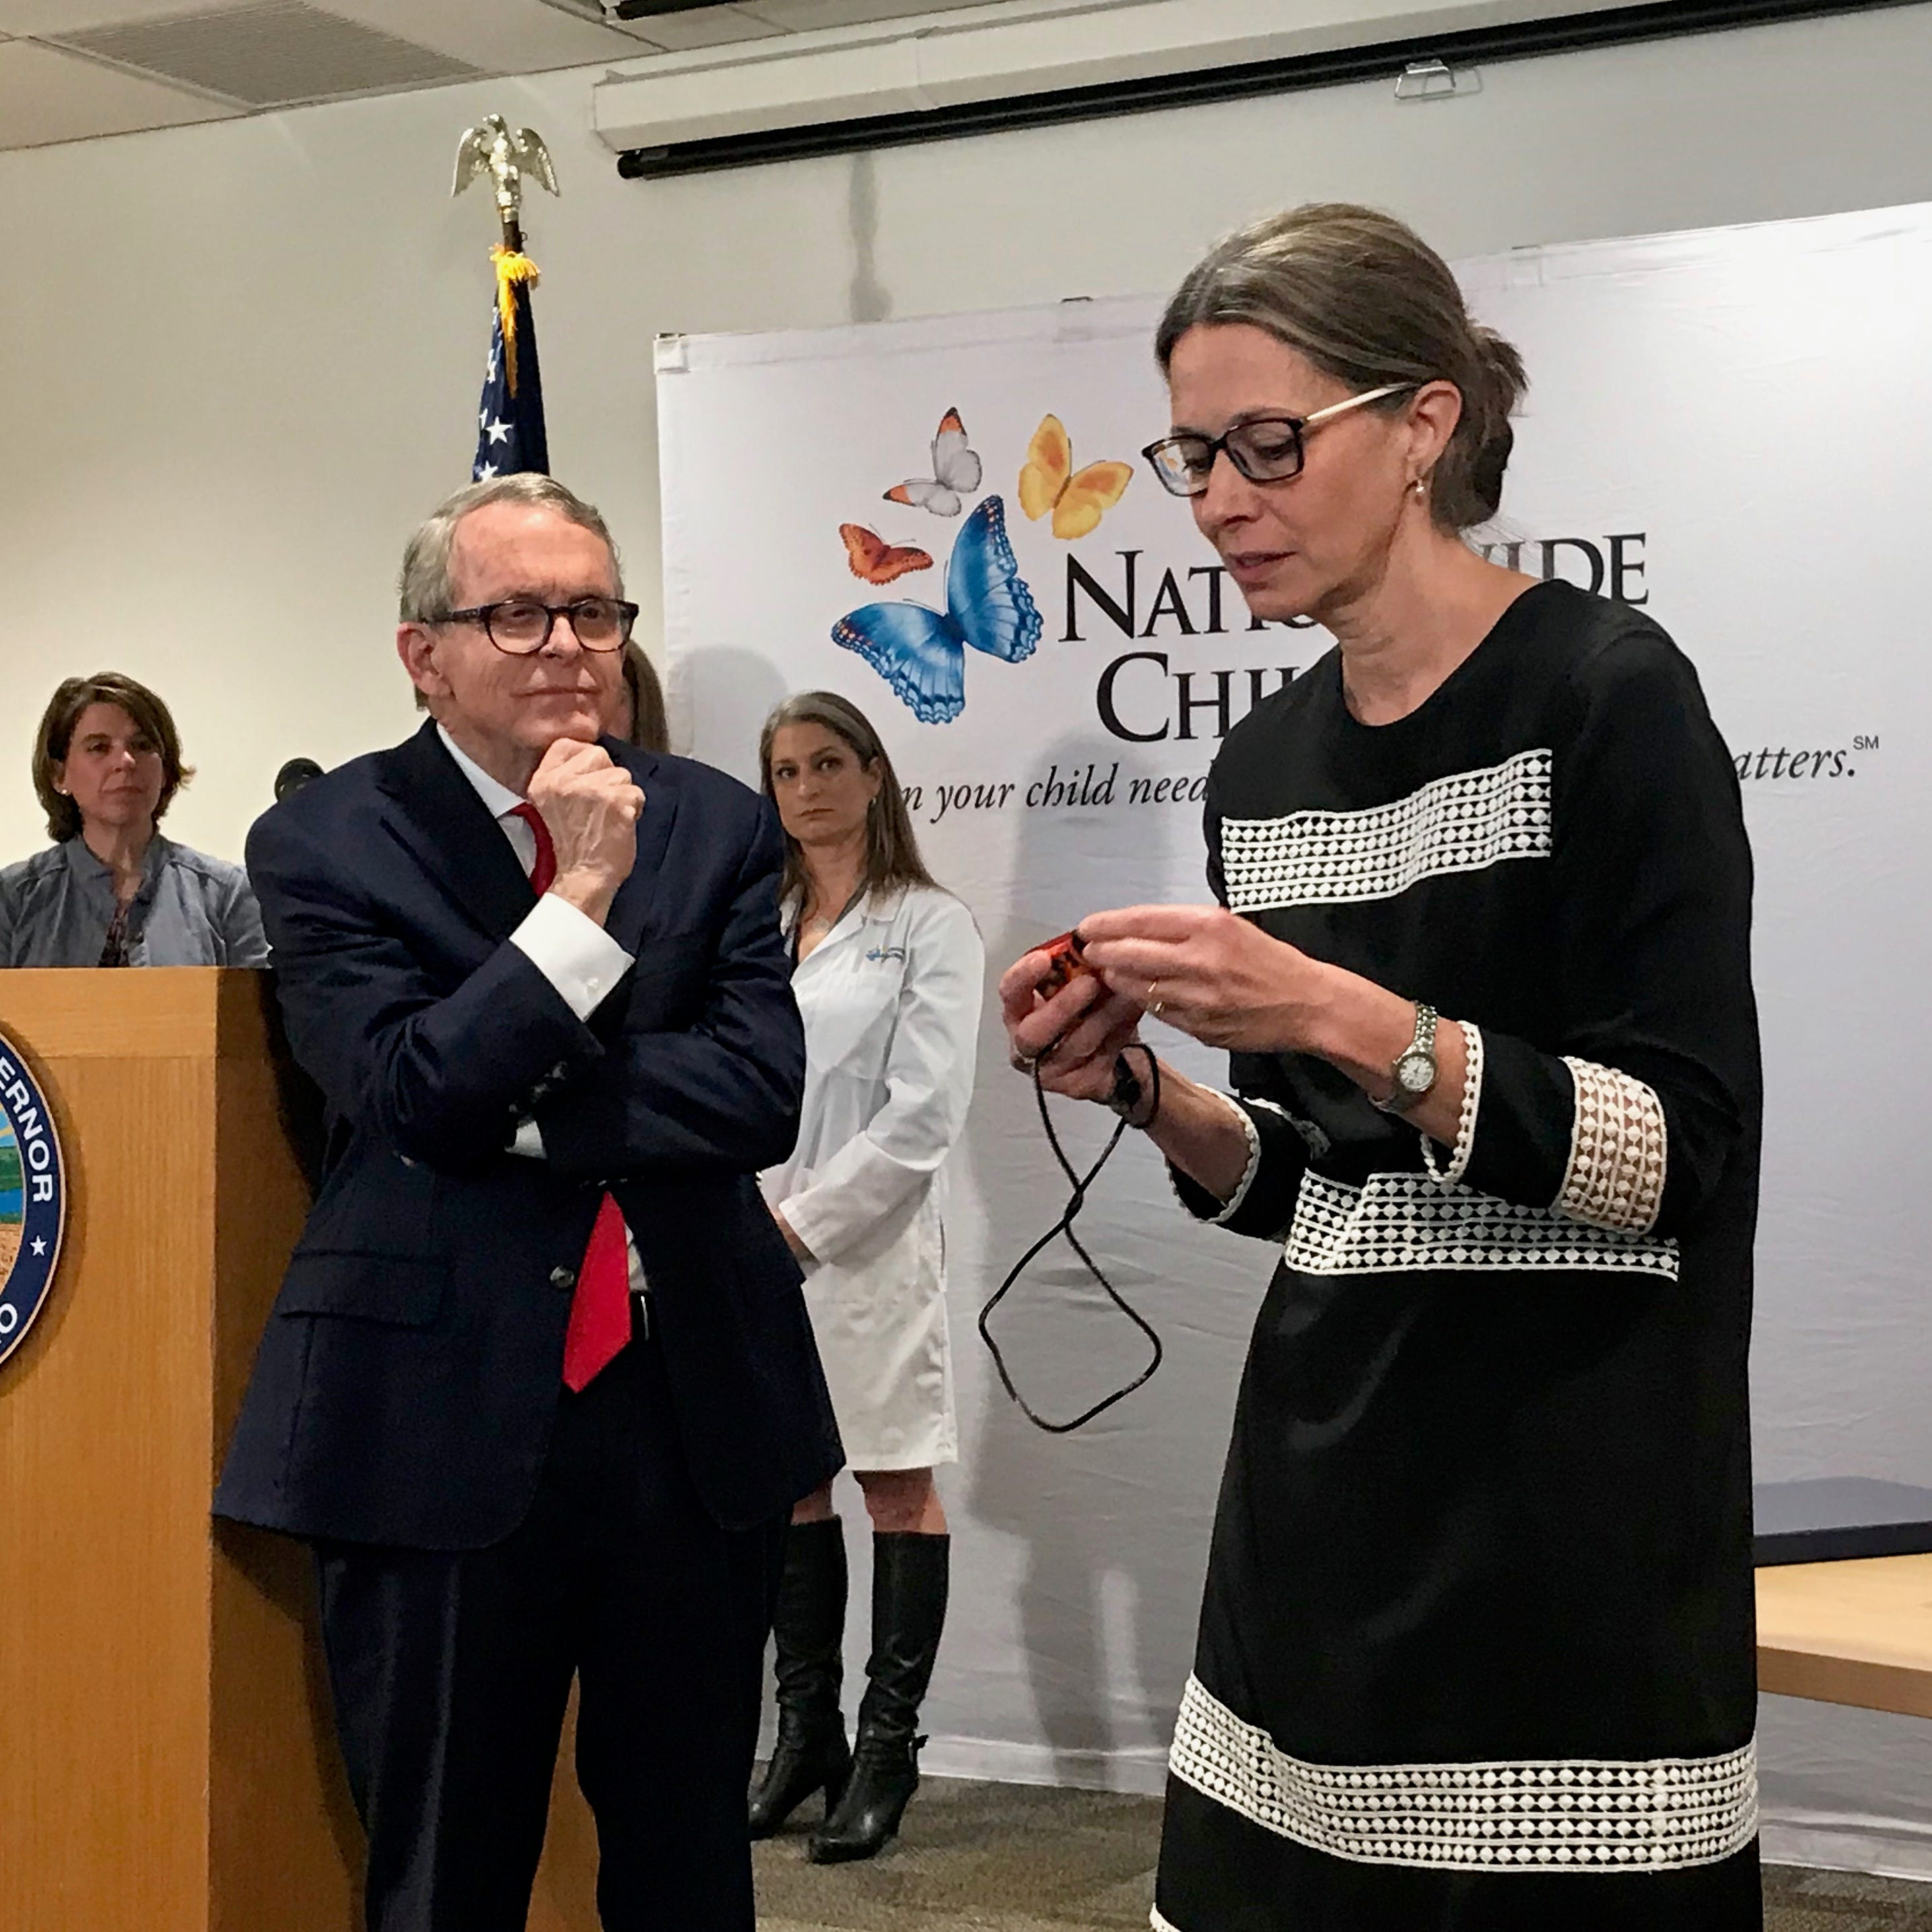 Ohio Gov. Mike DeWine watches Ohio Department of Health Director Amy Acton explain how small vaping devices work at a news conference at Nationwide Children's Hospital in Columbus on April, 17, 2019.